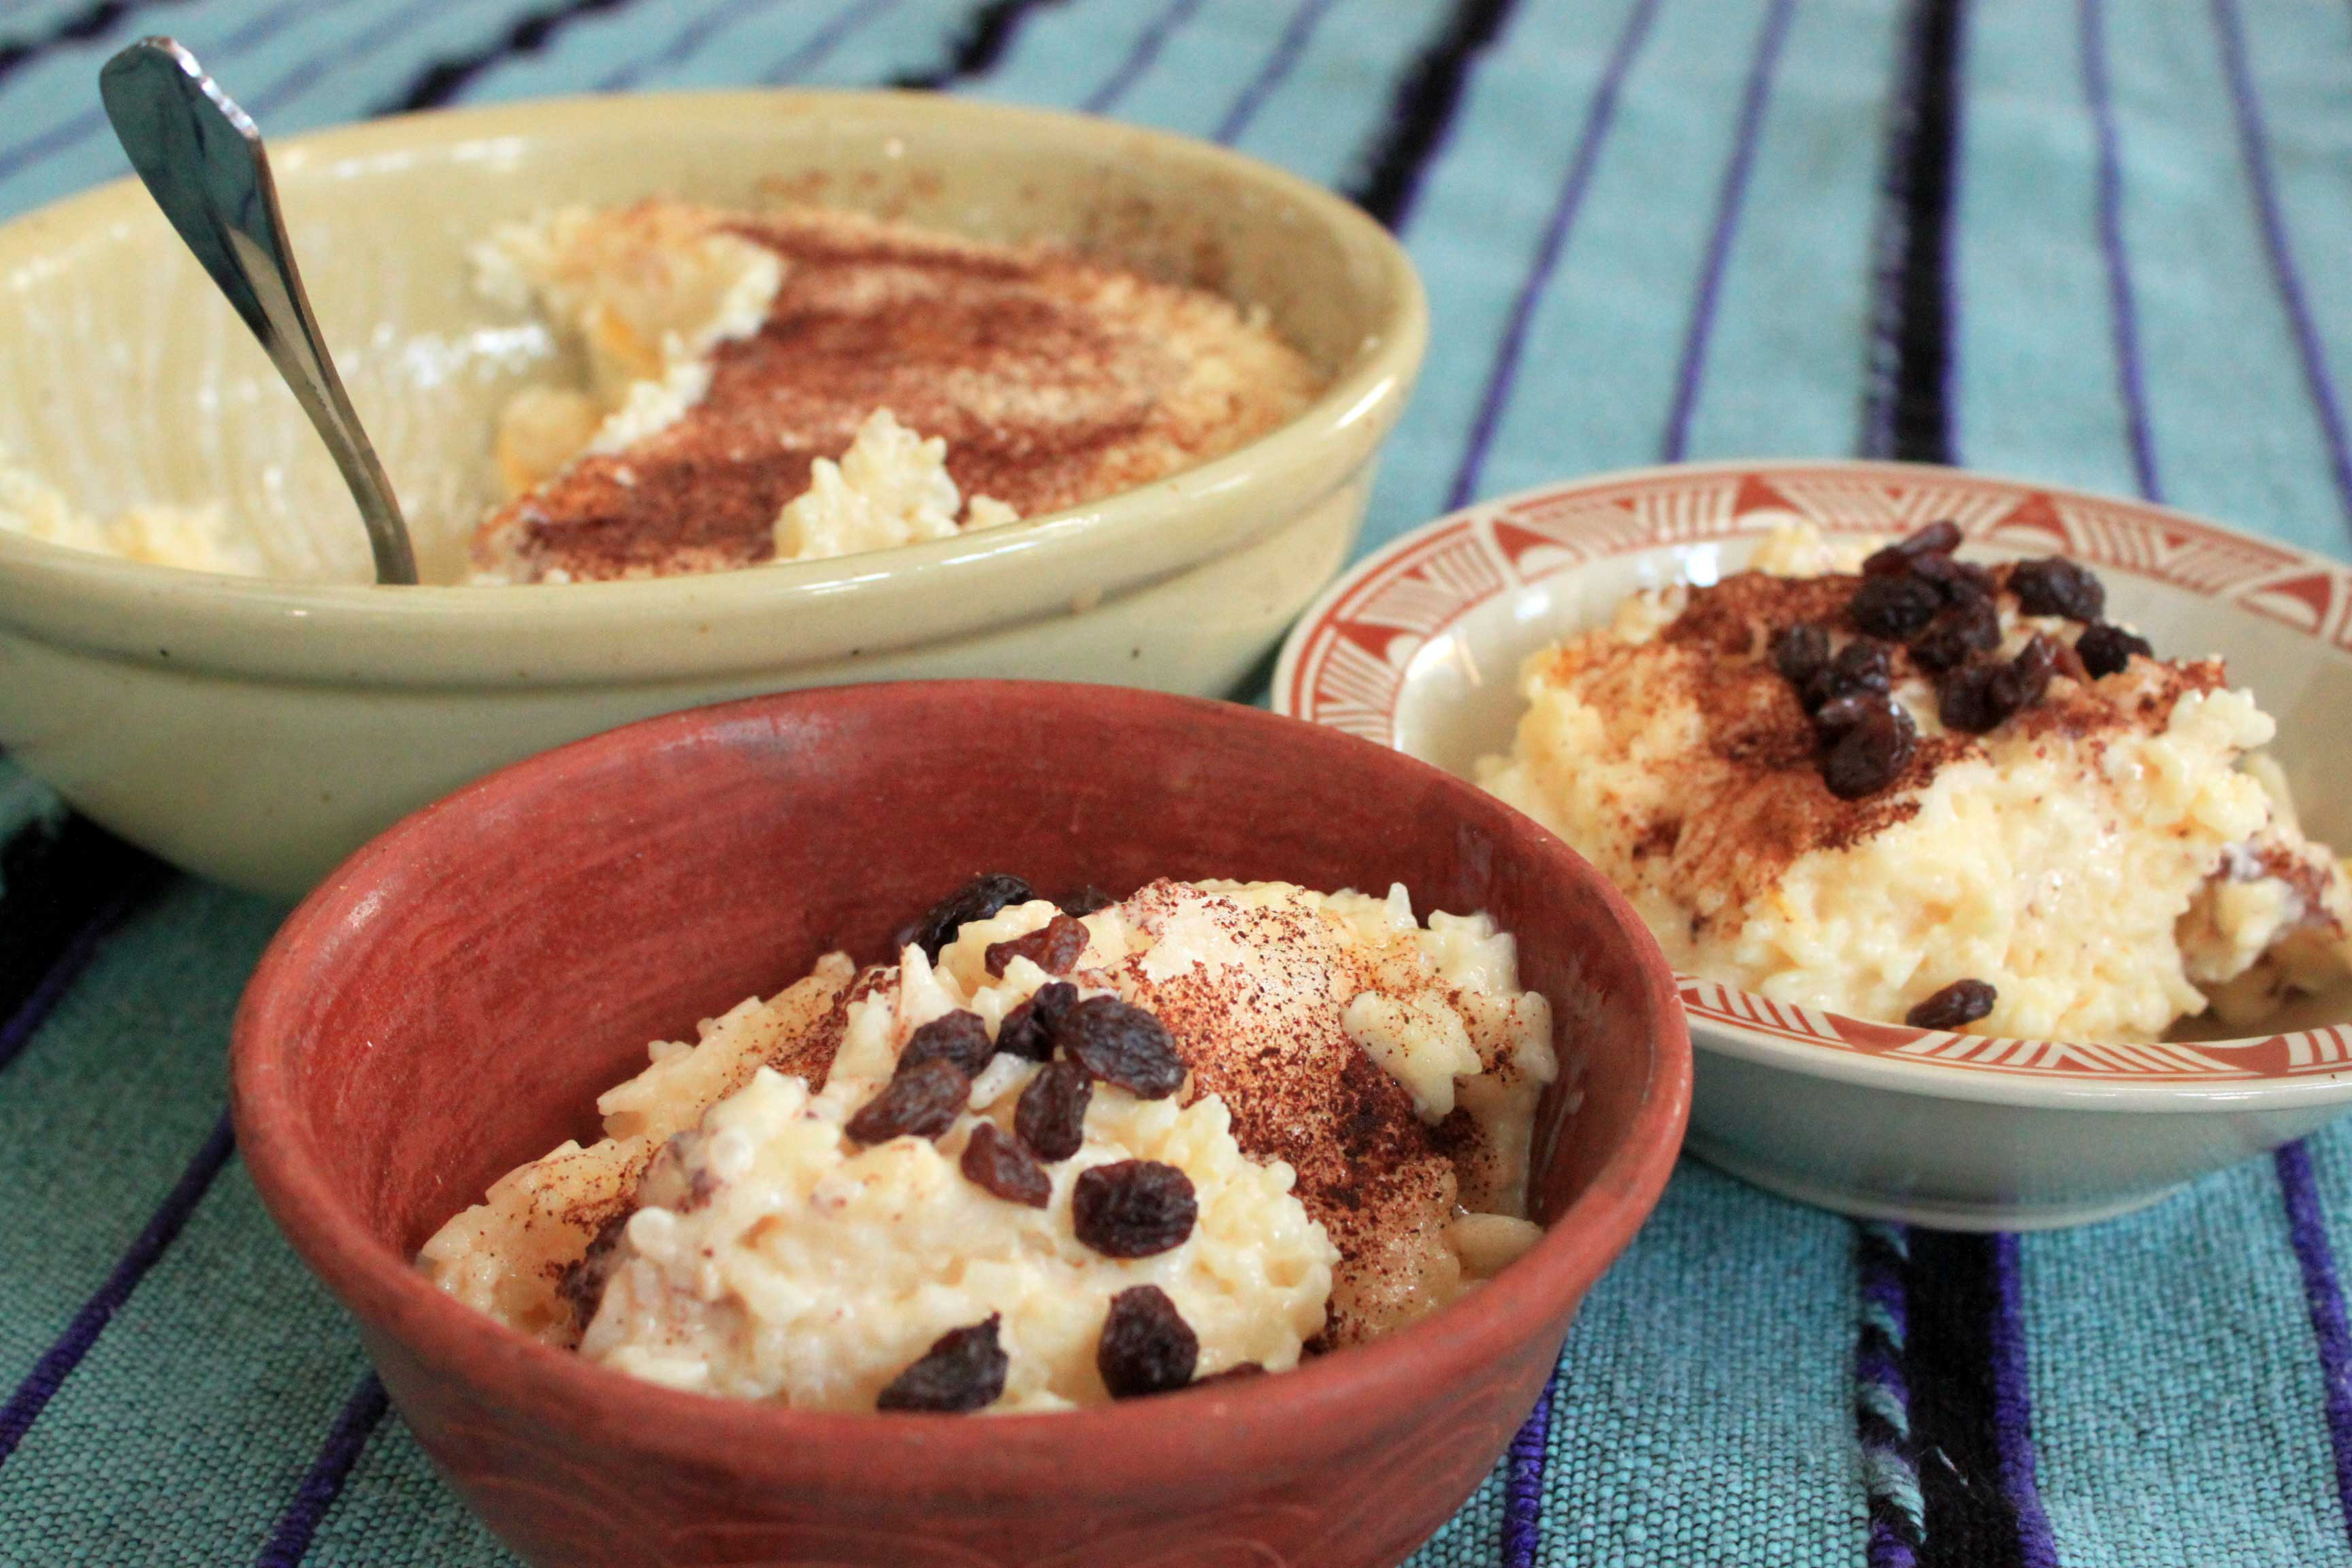 arroz con leche nuevo mexicano